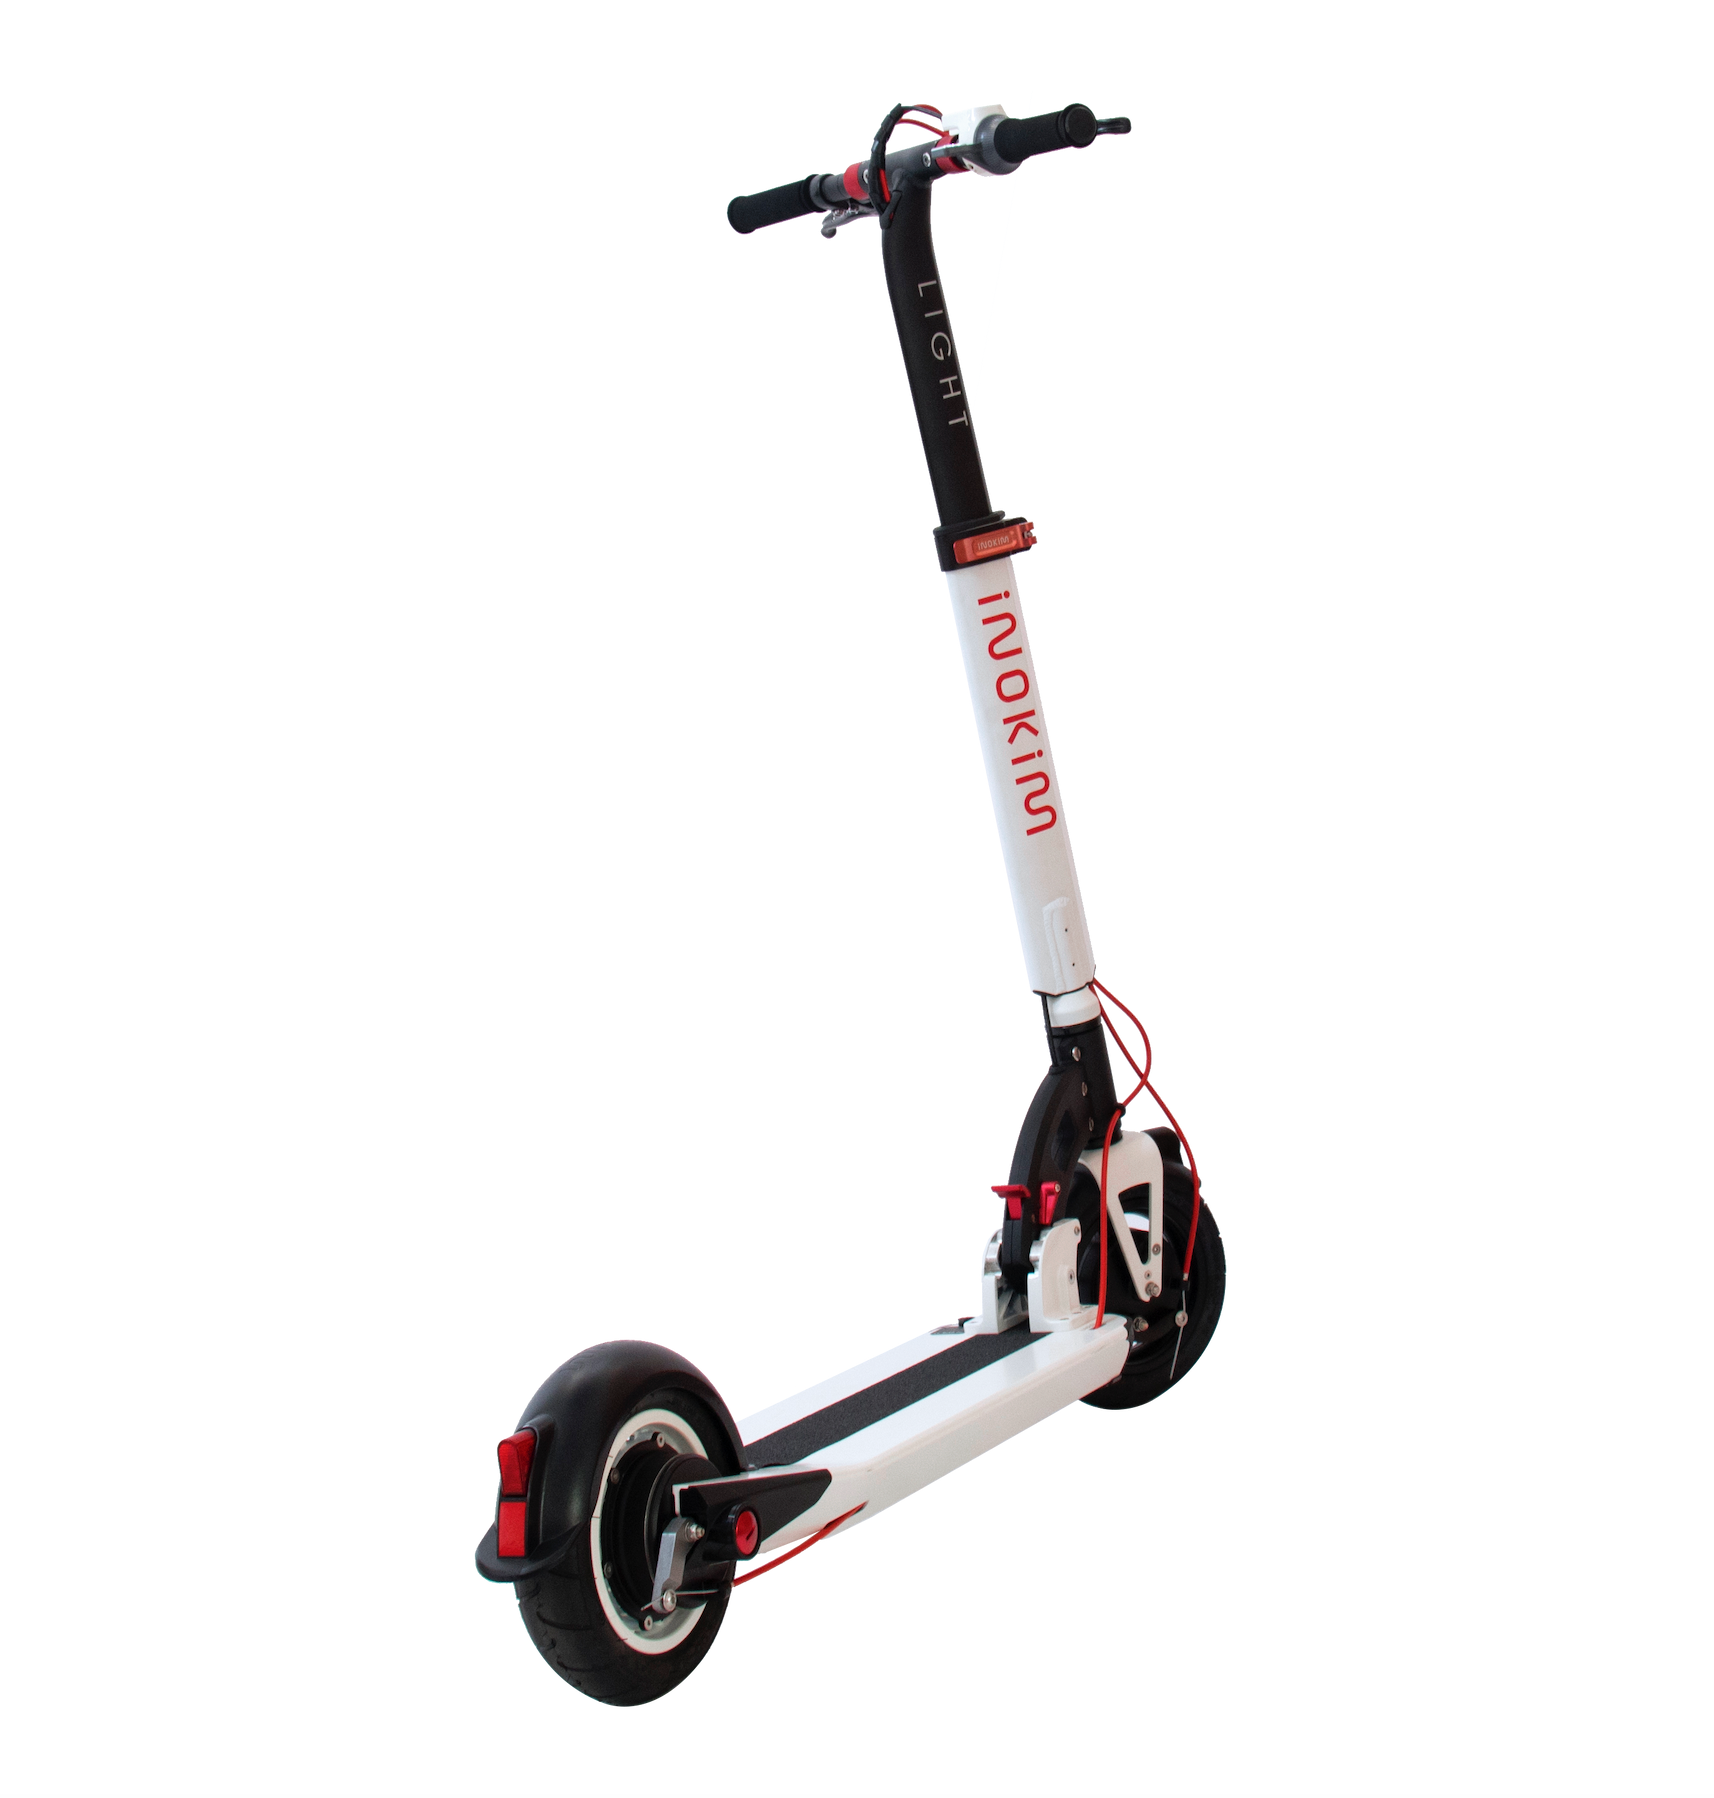 Inokim Light 2 Electric Scooter in White